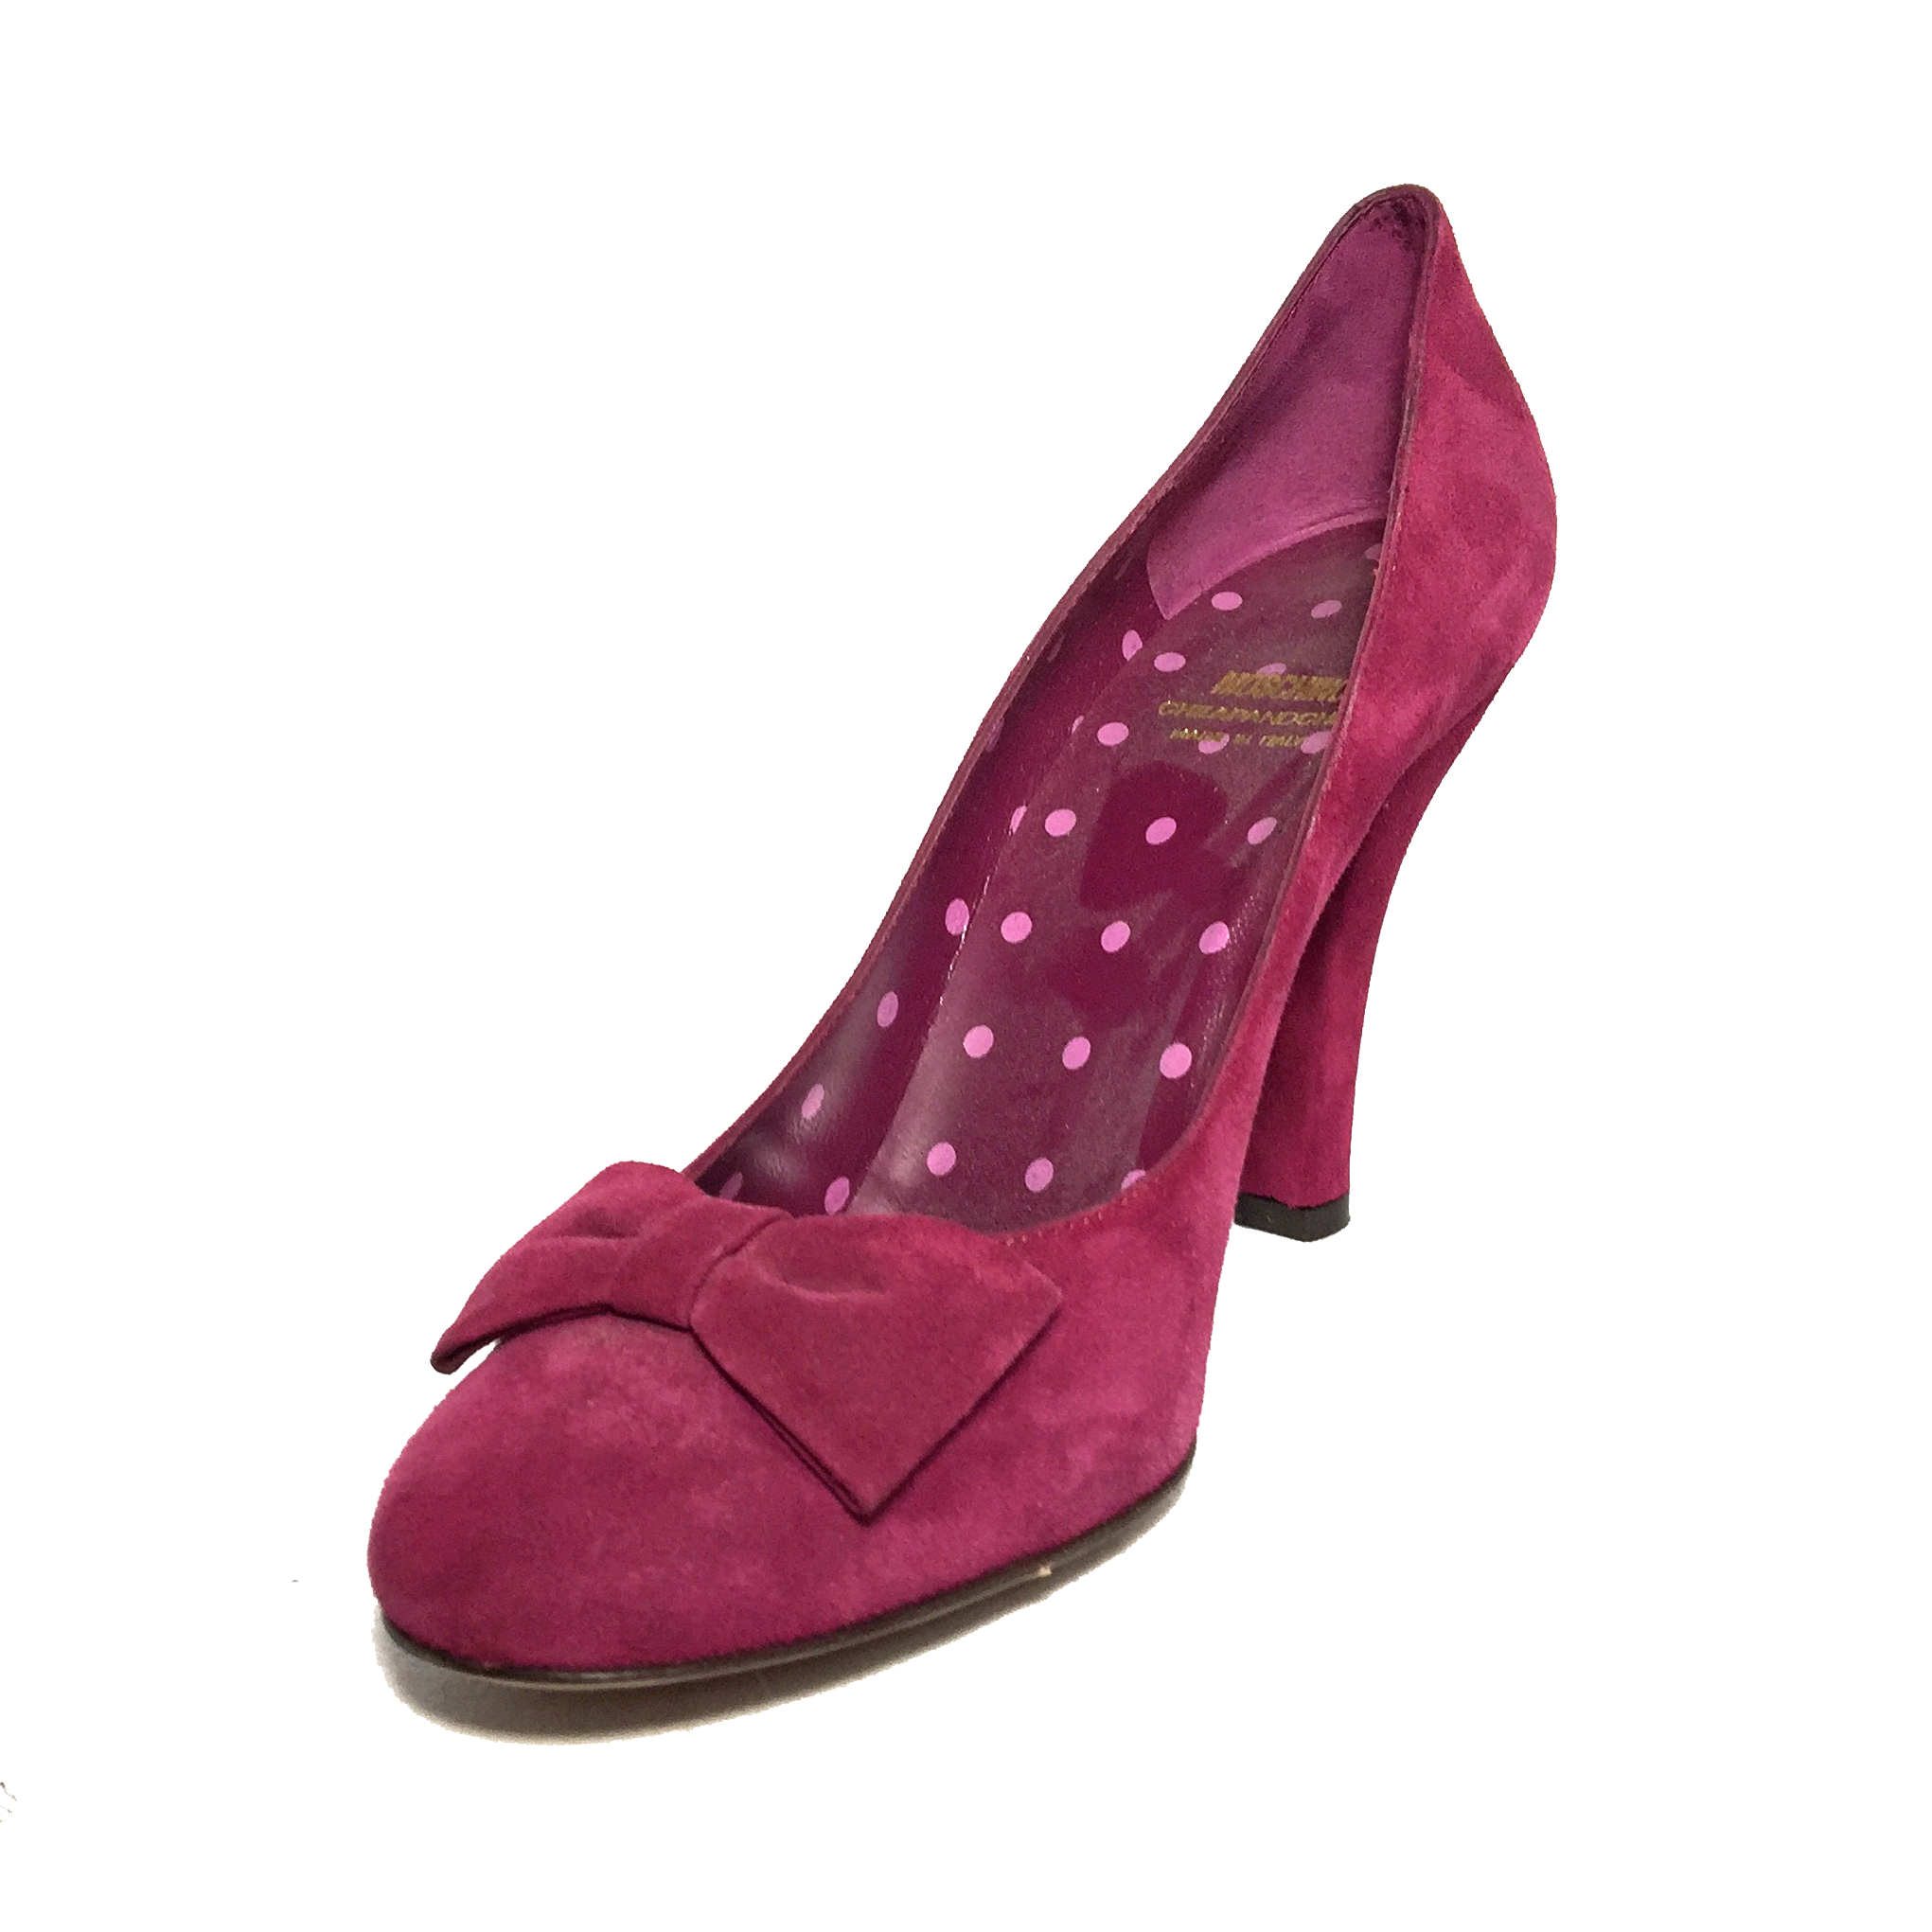 Moschino Berry Suede Heels Size 9